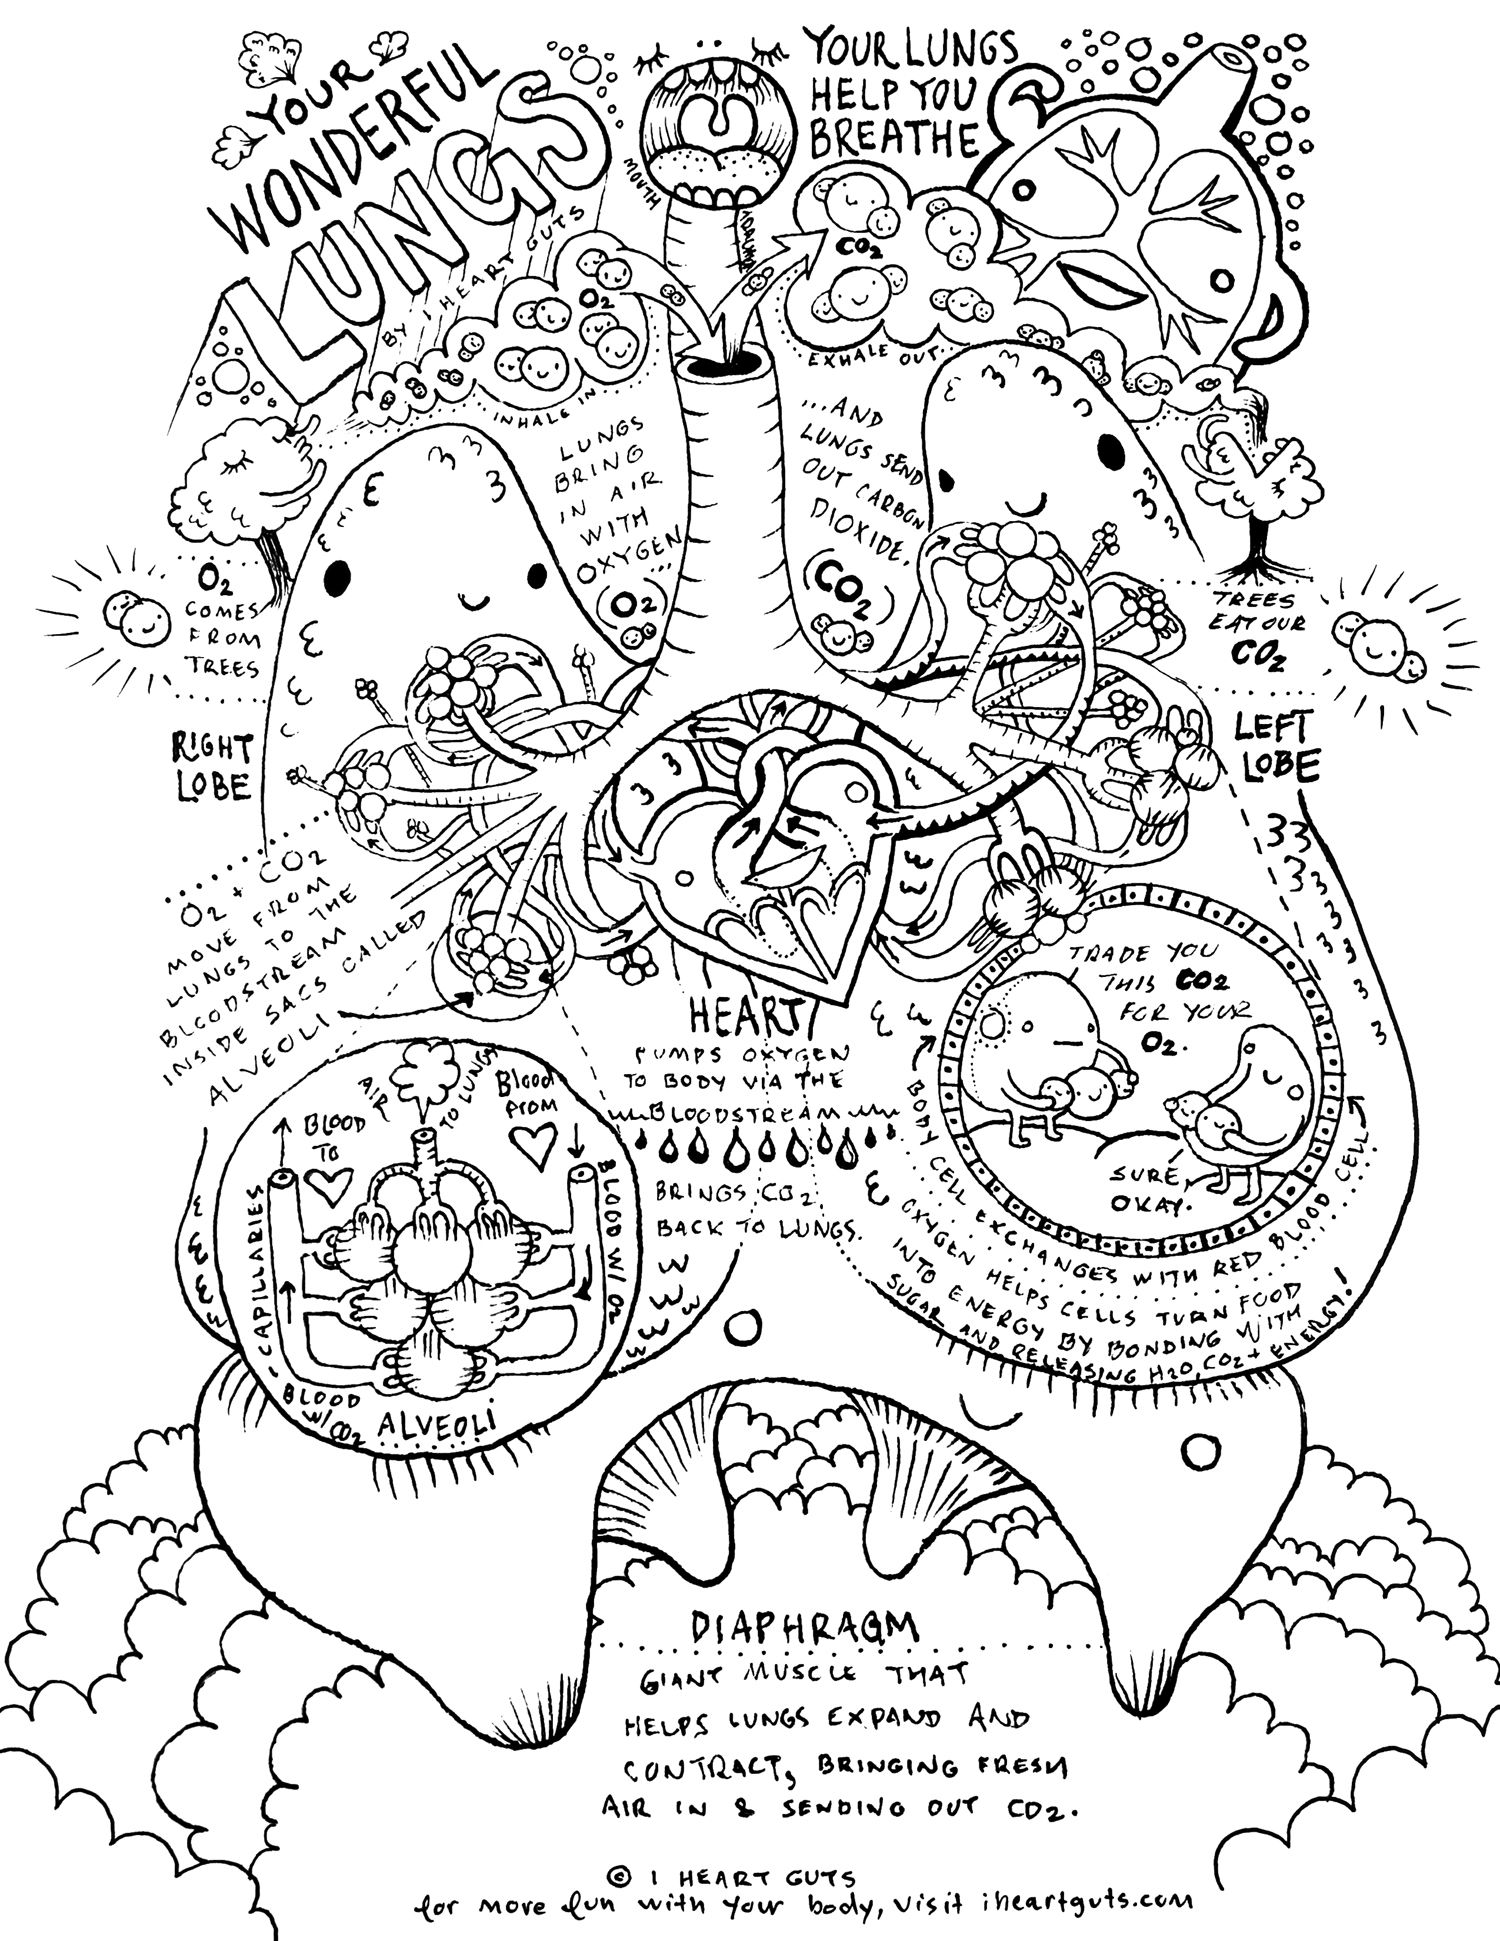 respiratory system coloring page respiratory system coloring page coloring home system page respiratory coloring